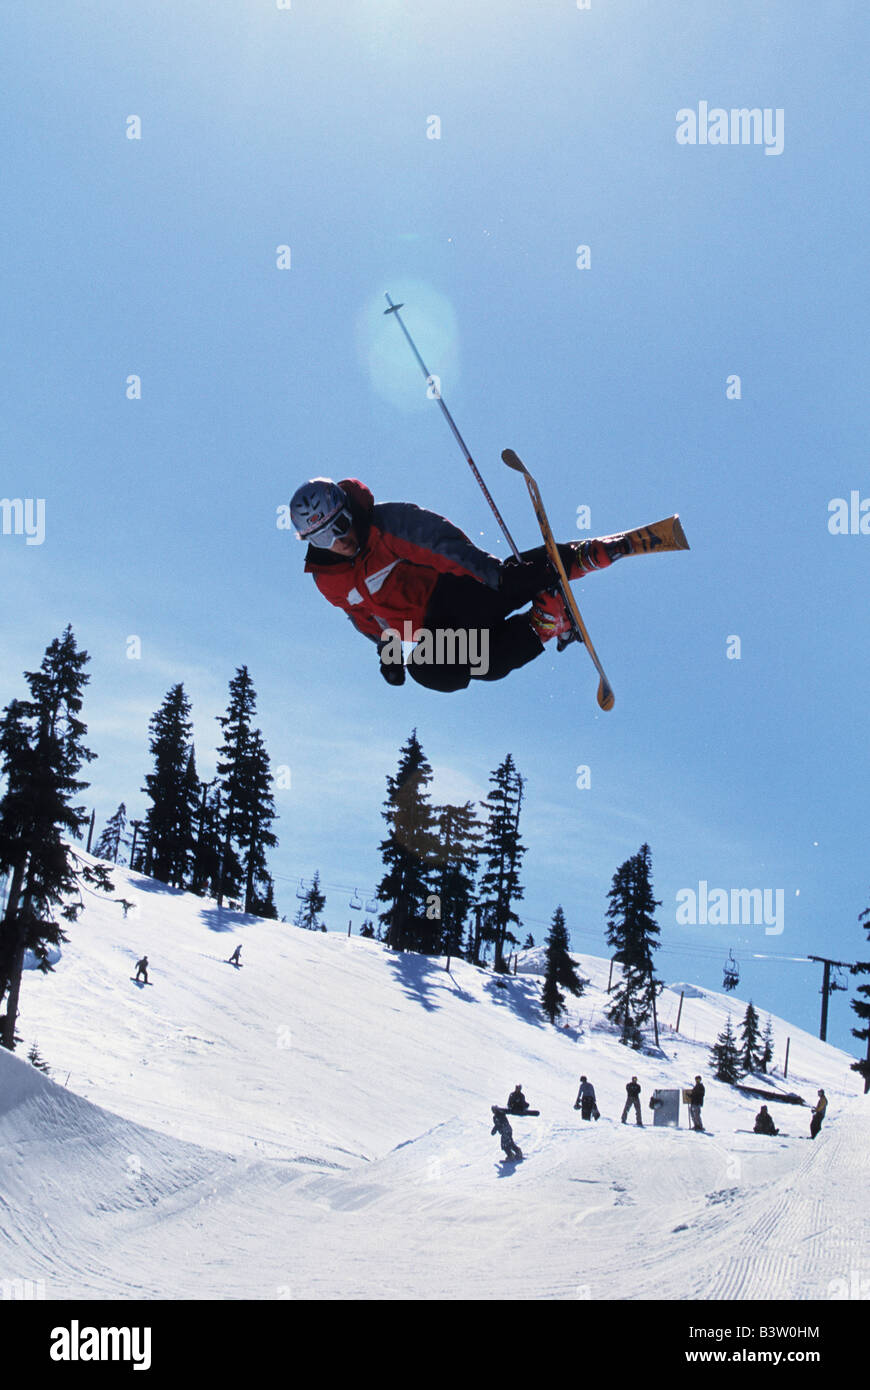 A skier dose a mute grab in the half pipe - Stock Image